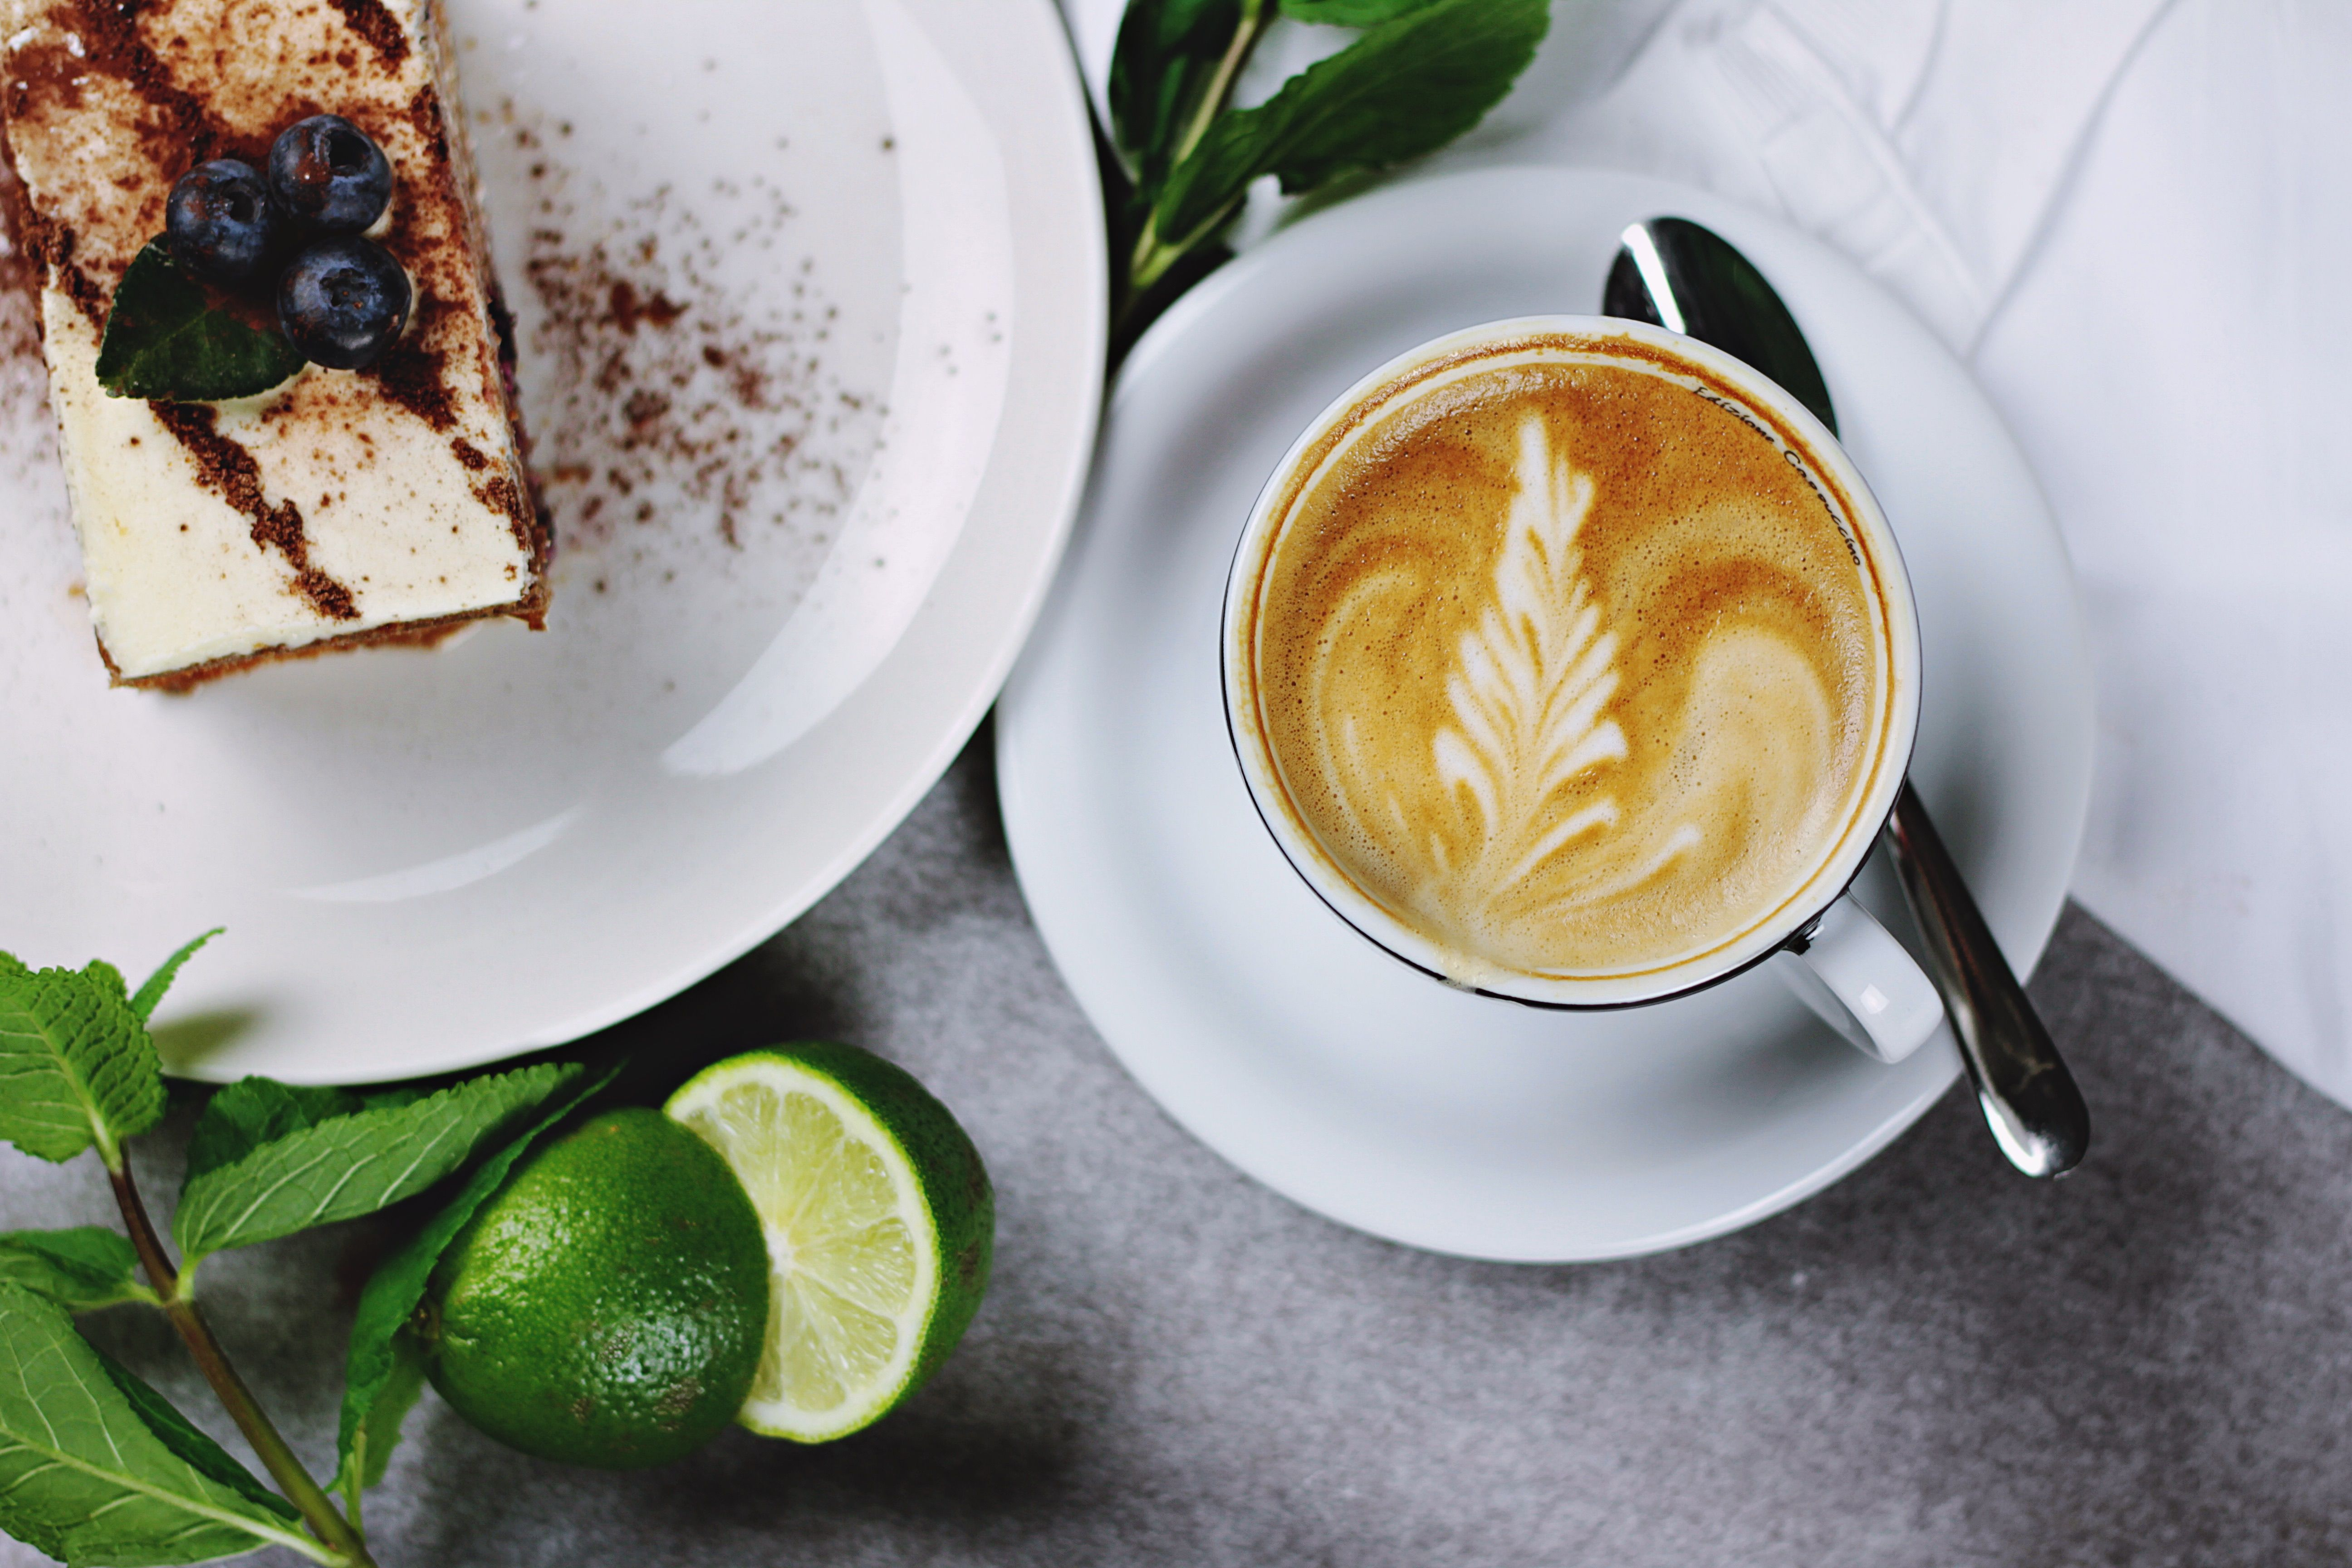 How to Reduce Bitterness in Coffee